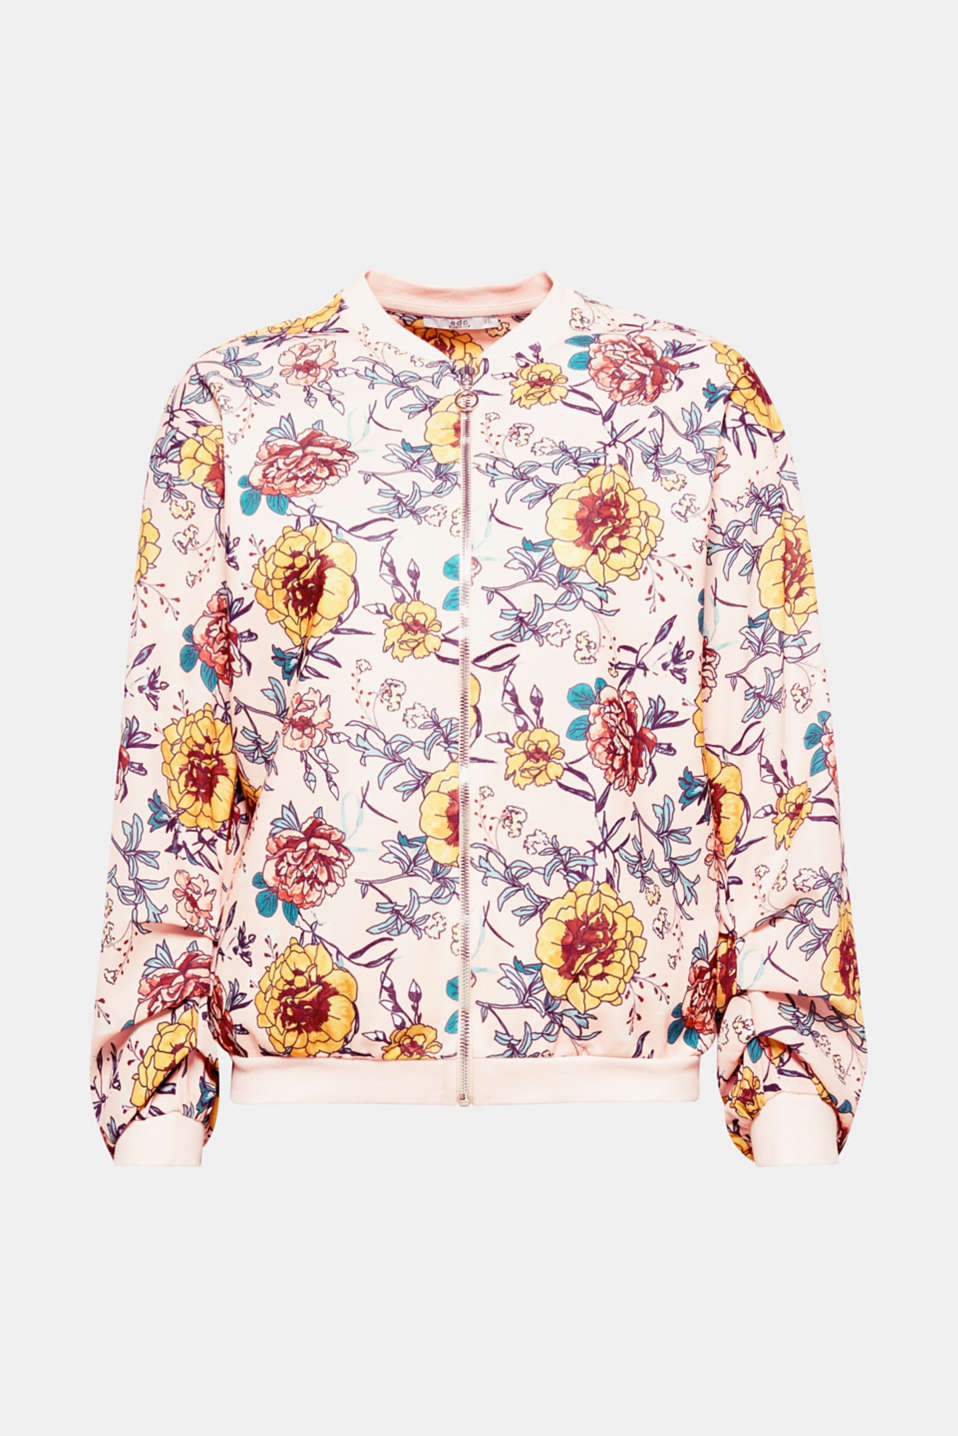 In full bloom! Let spring into your wardrobe with this bomber jacket in a floral look in a material mix.